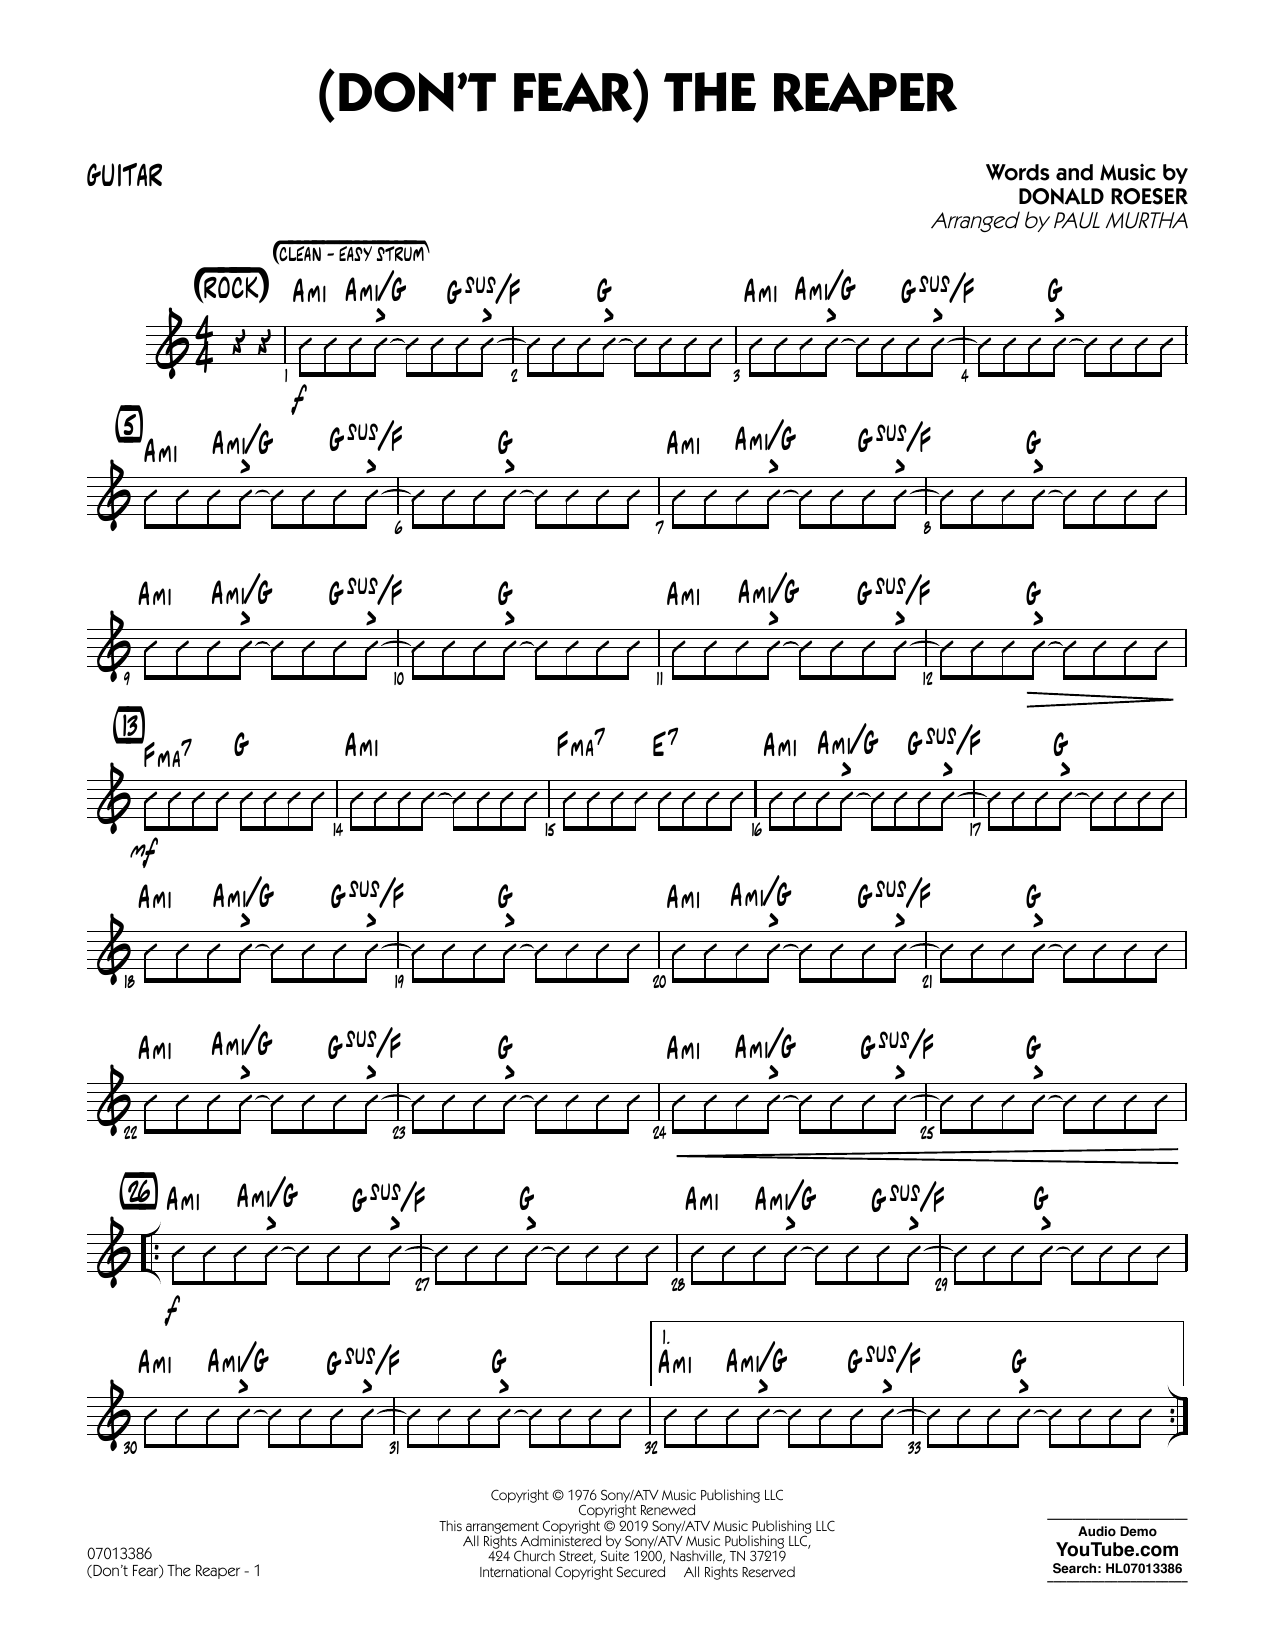 Blue Oyster Cult (Don't Fear) The Reaper (arr. Paul Murtha) - Guitar sheet music preview music notes and score for Jazz Ensemble including 2 page(s)